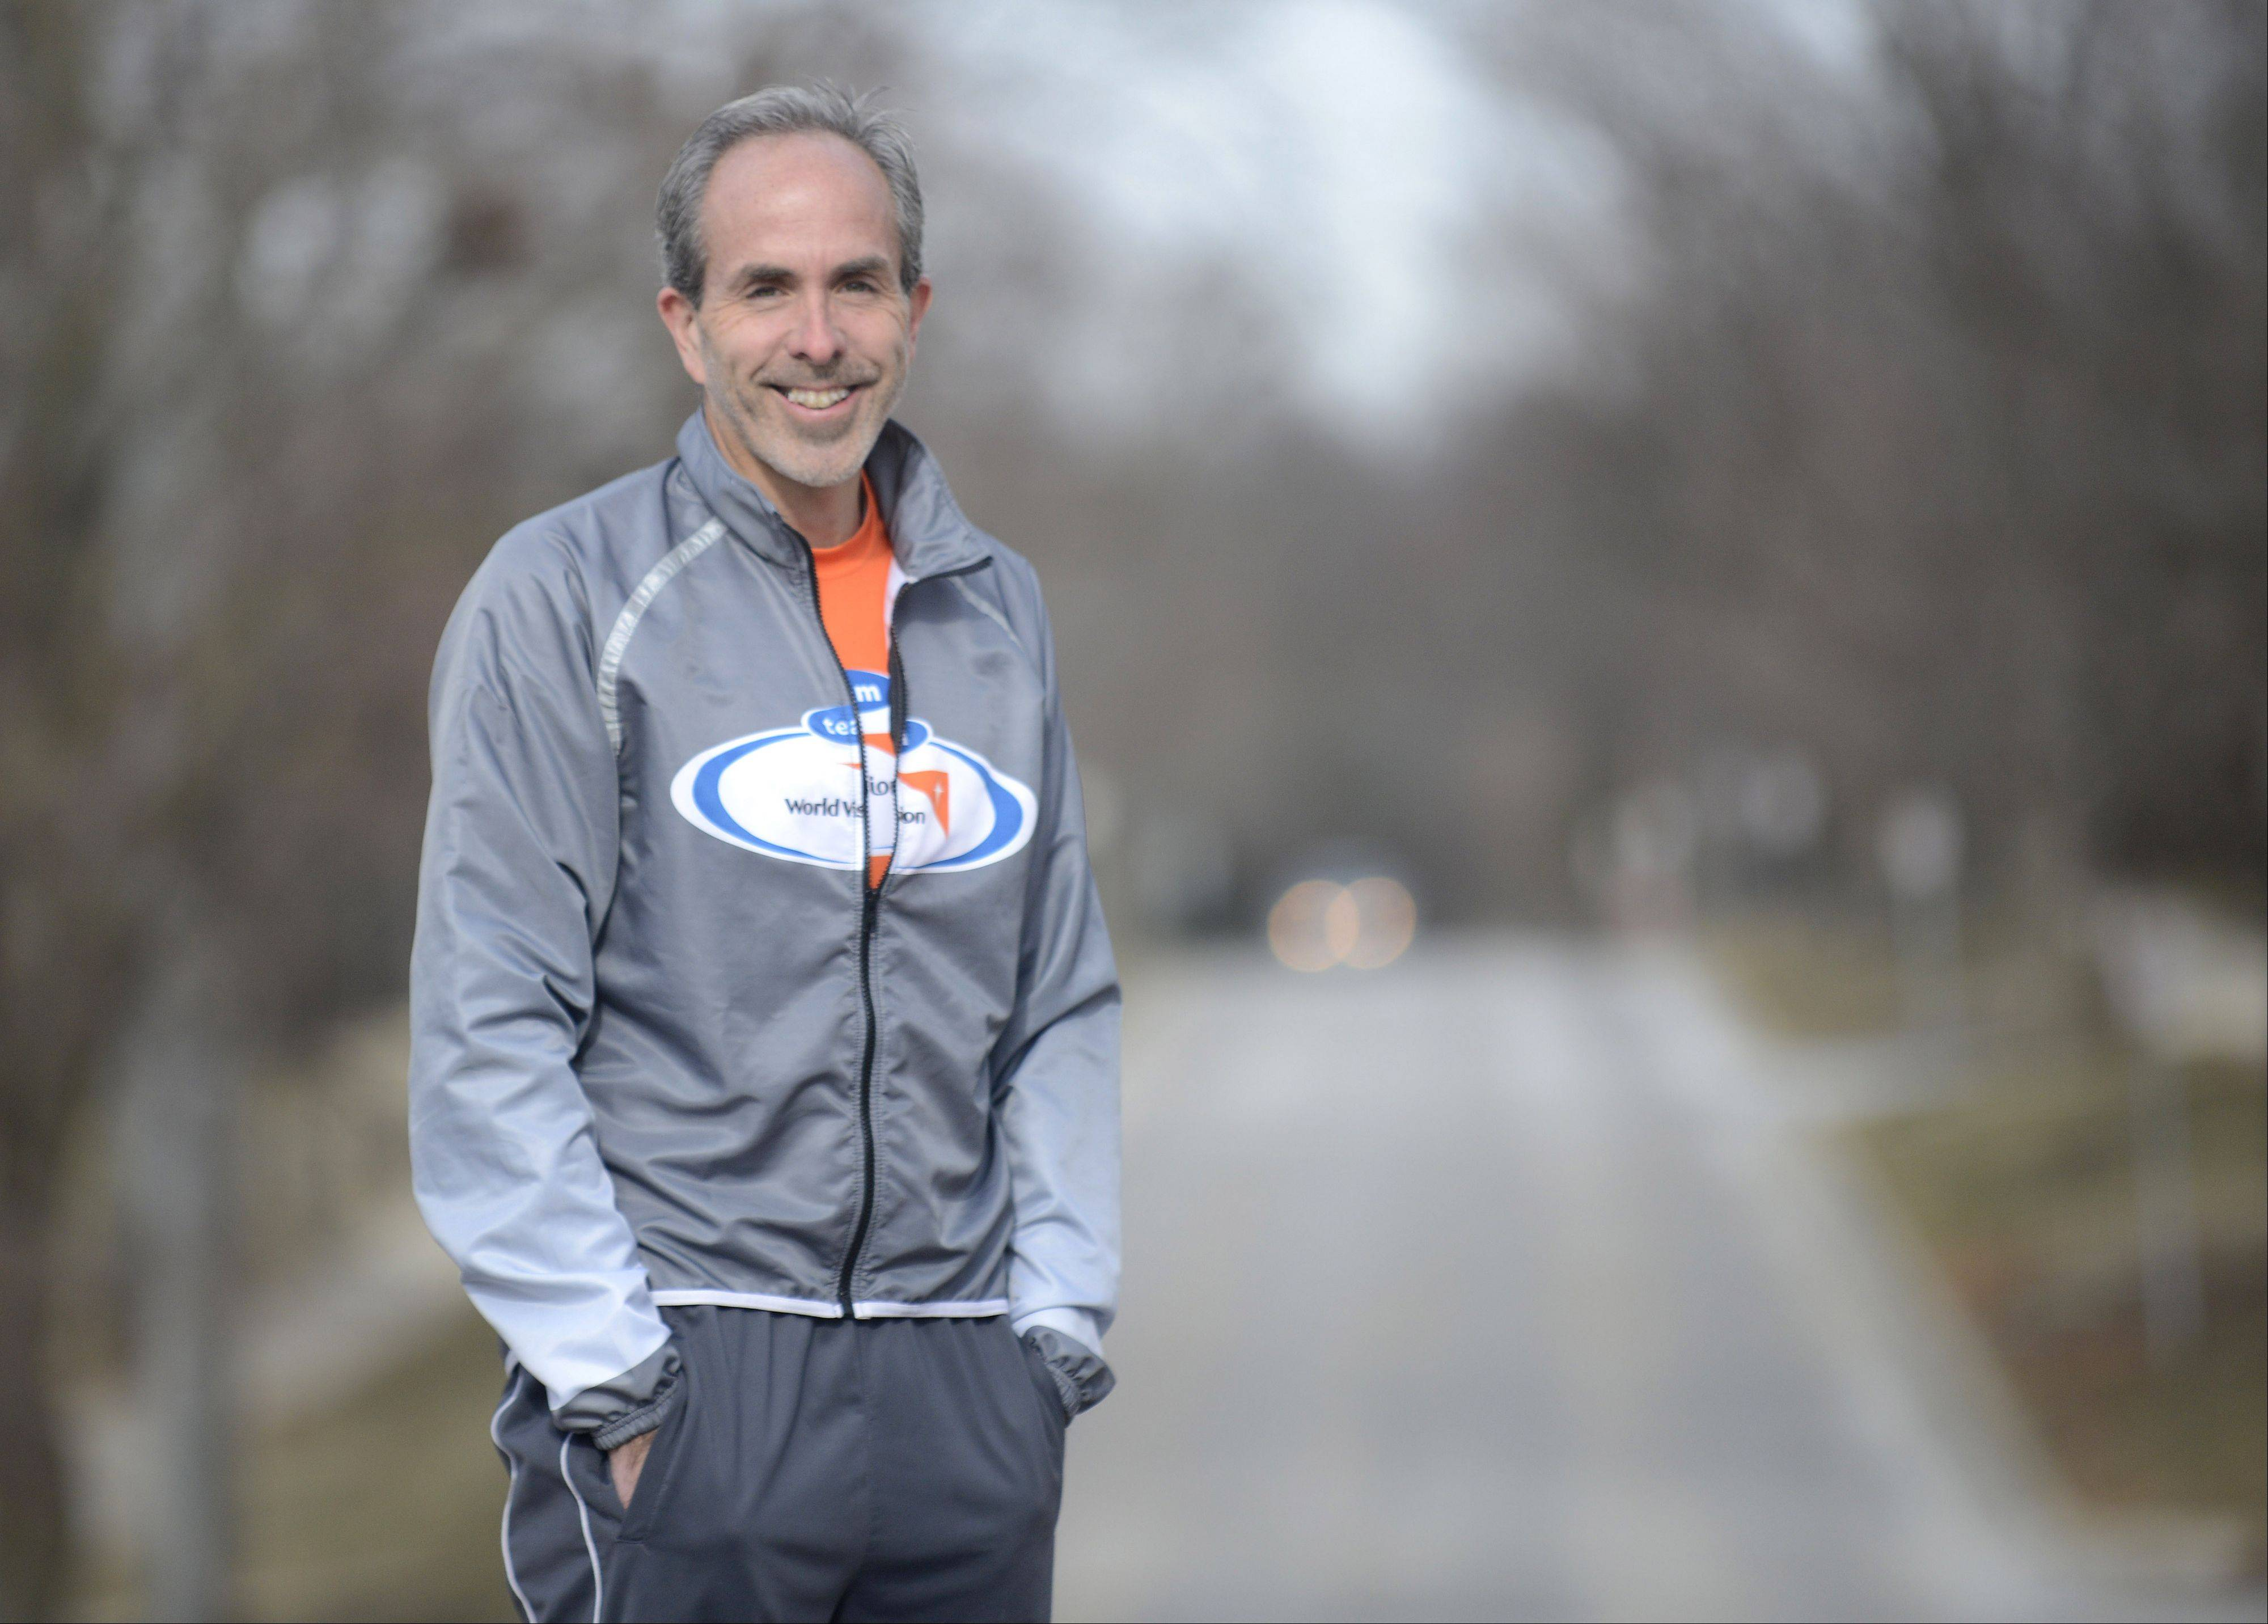 St. Charles resident Steve Spear will begin a run next month from Santa Monica, Calif., to New York.